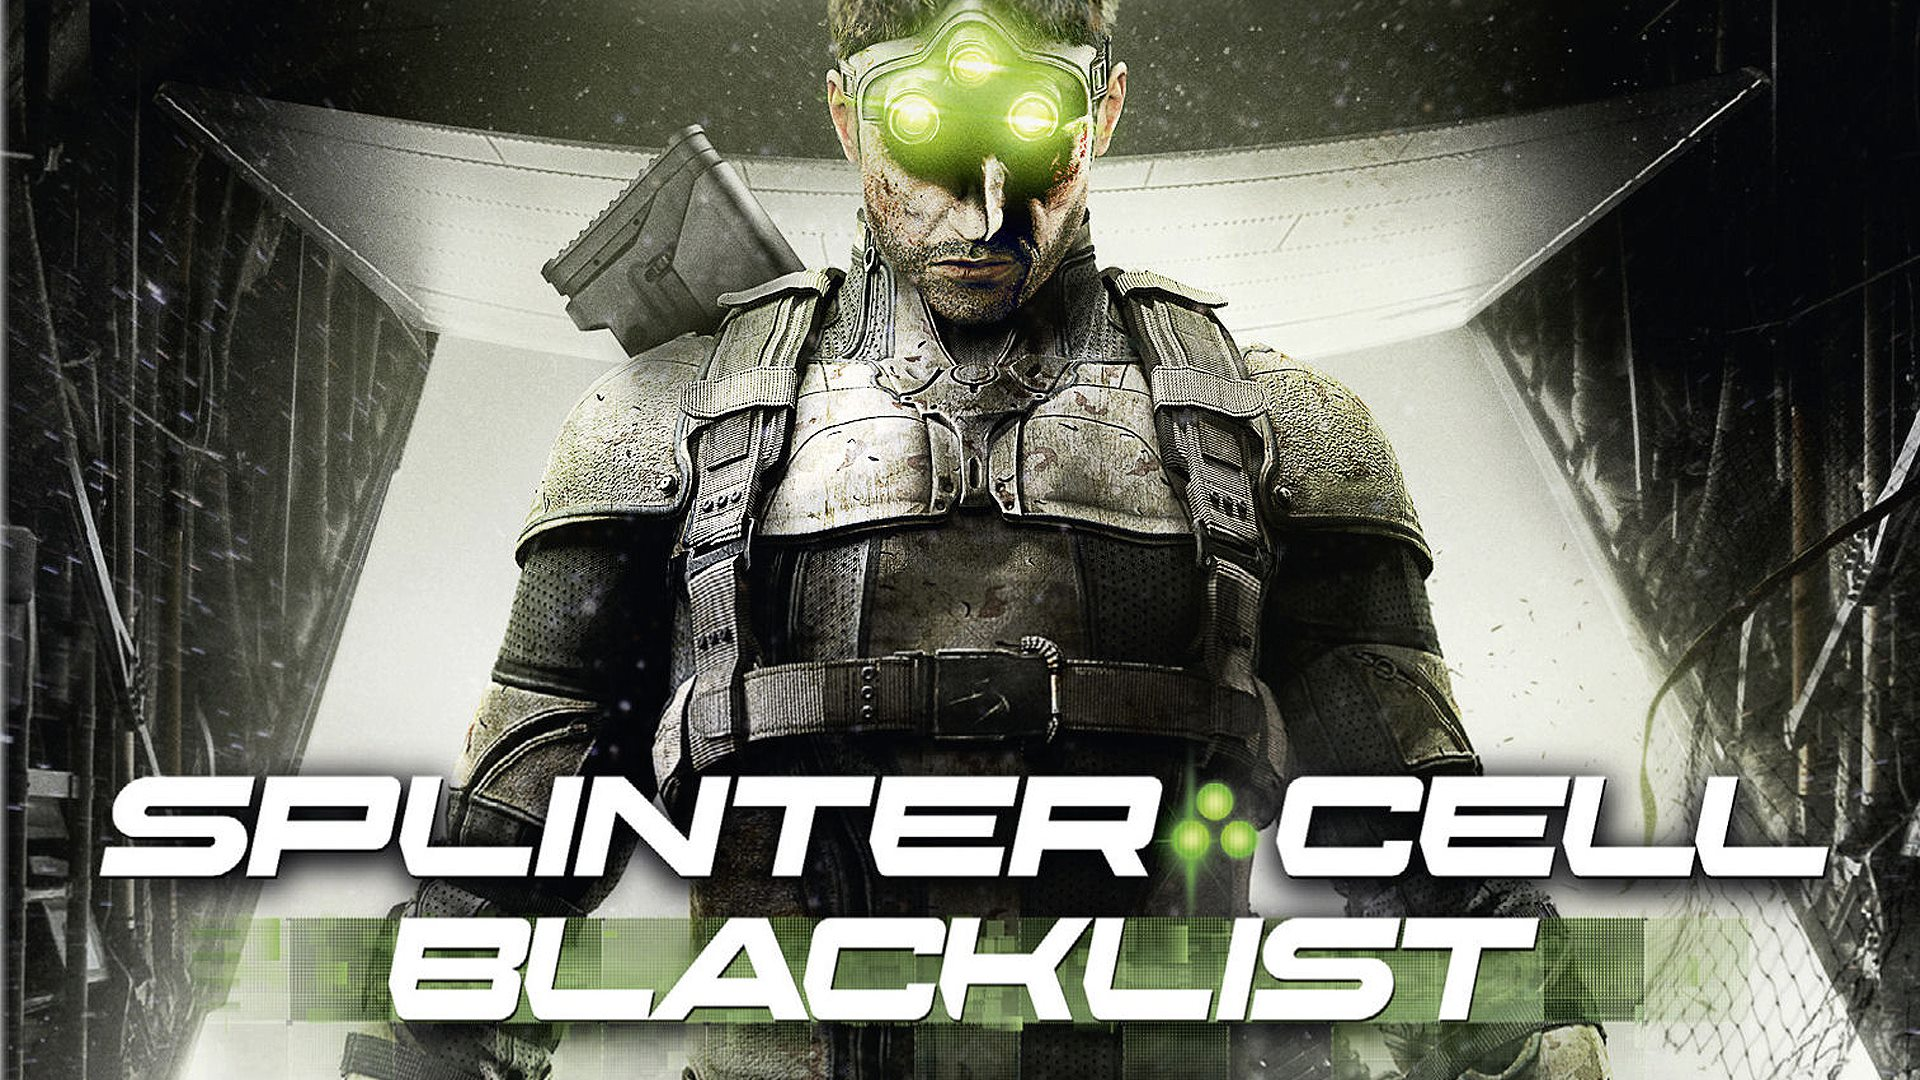 Splinter Bell Black List Banner 1